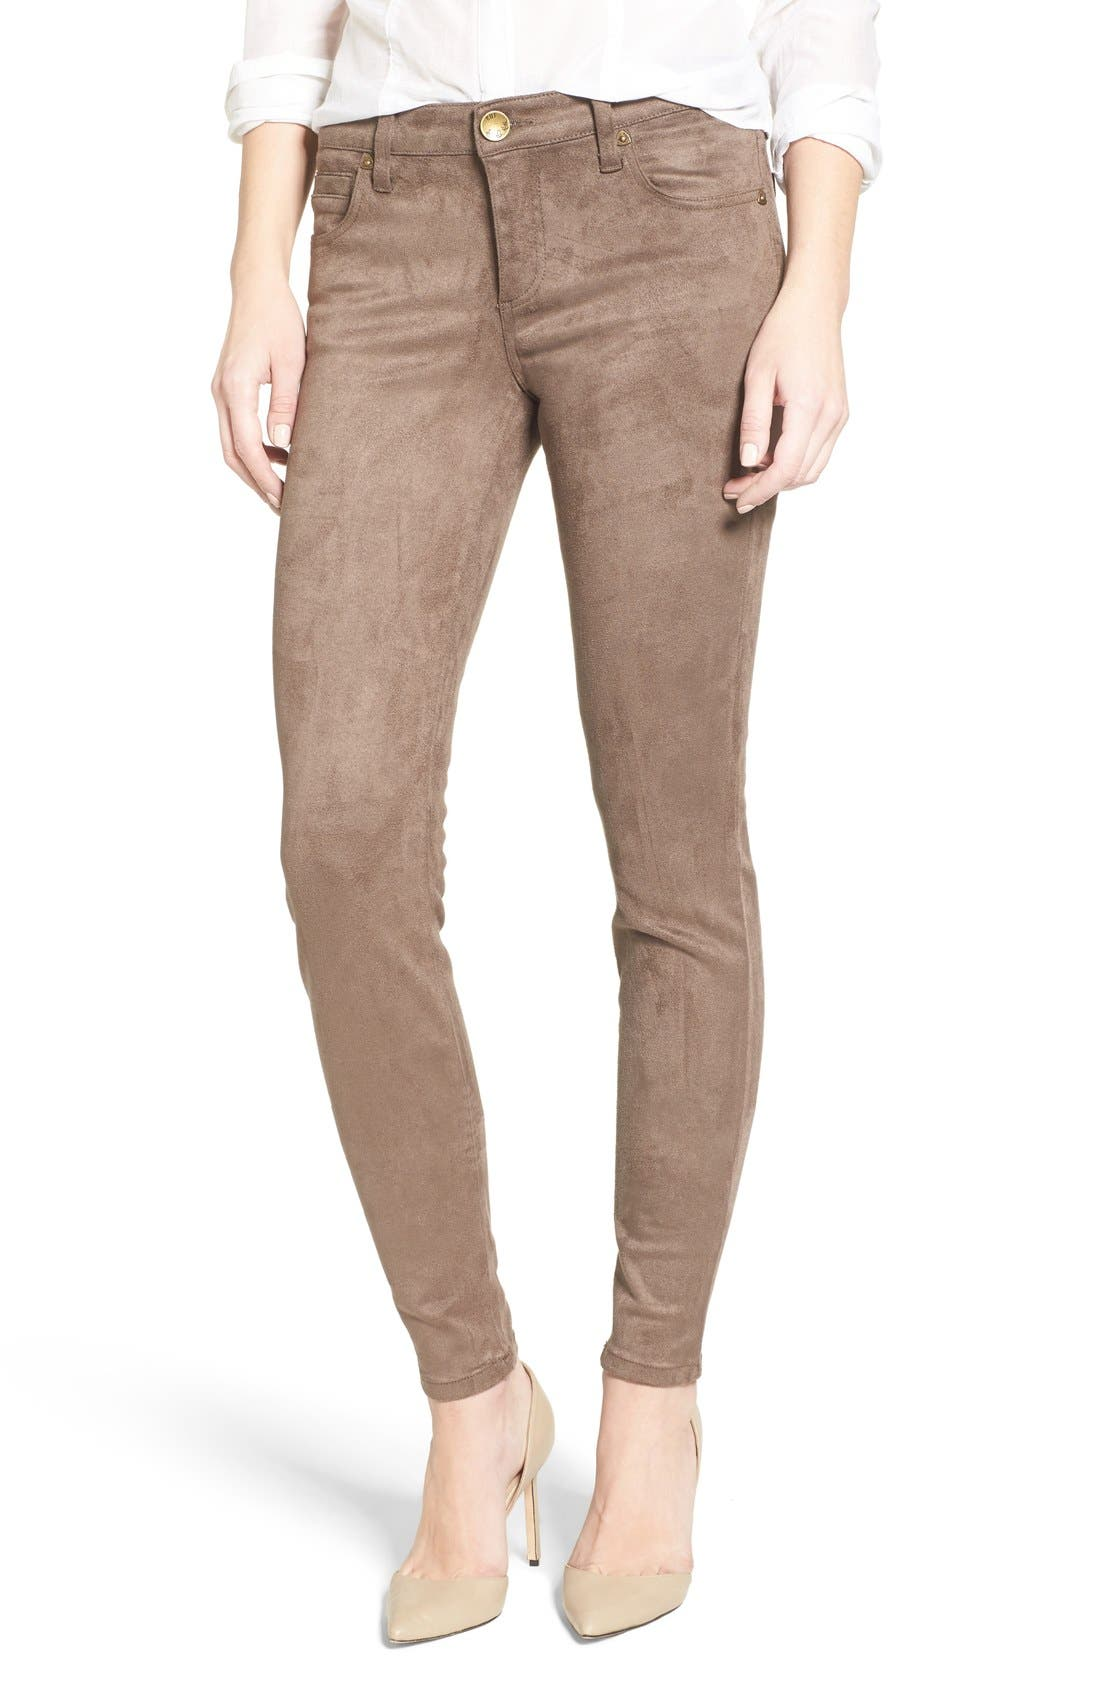 Alternate Image 1 Selected - KUT from the Kloth Mia Faux Suede Skinny Jeans